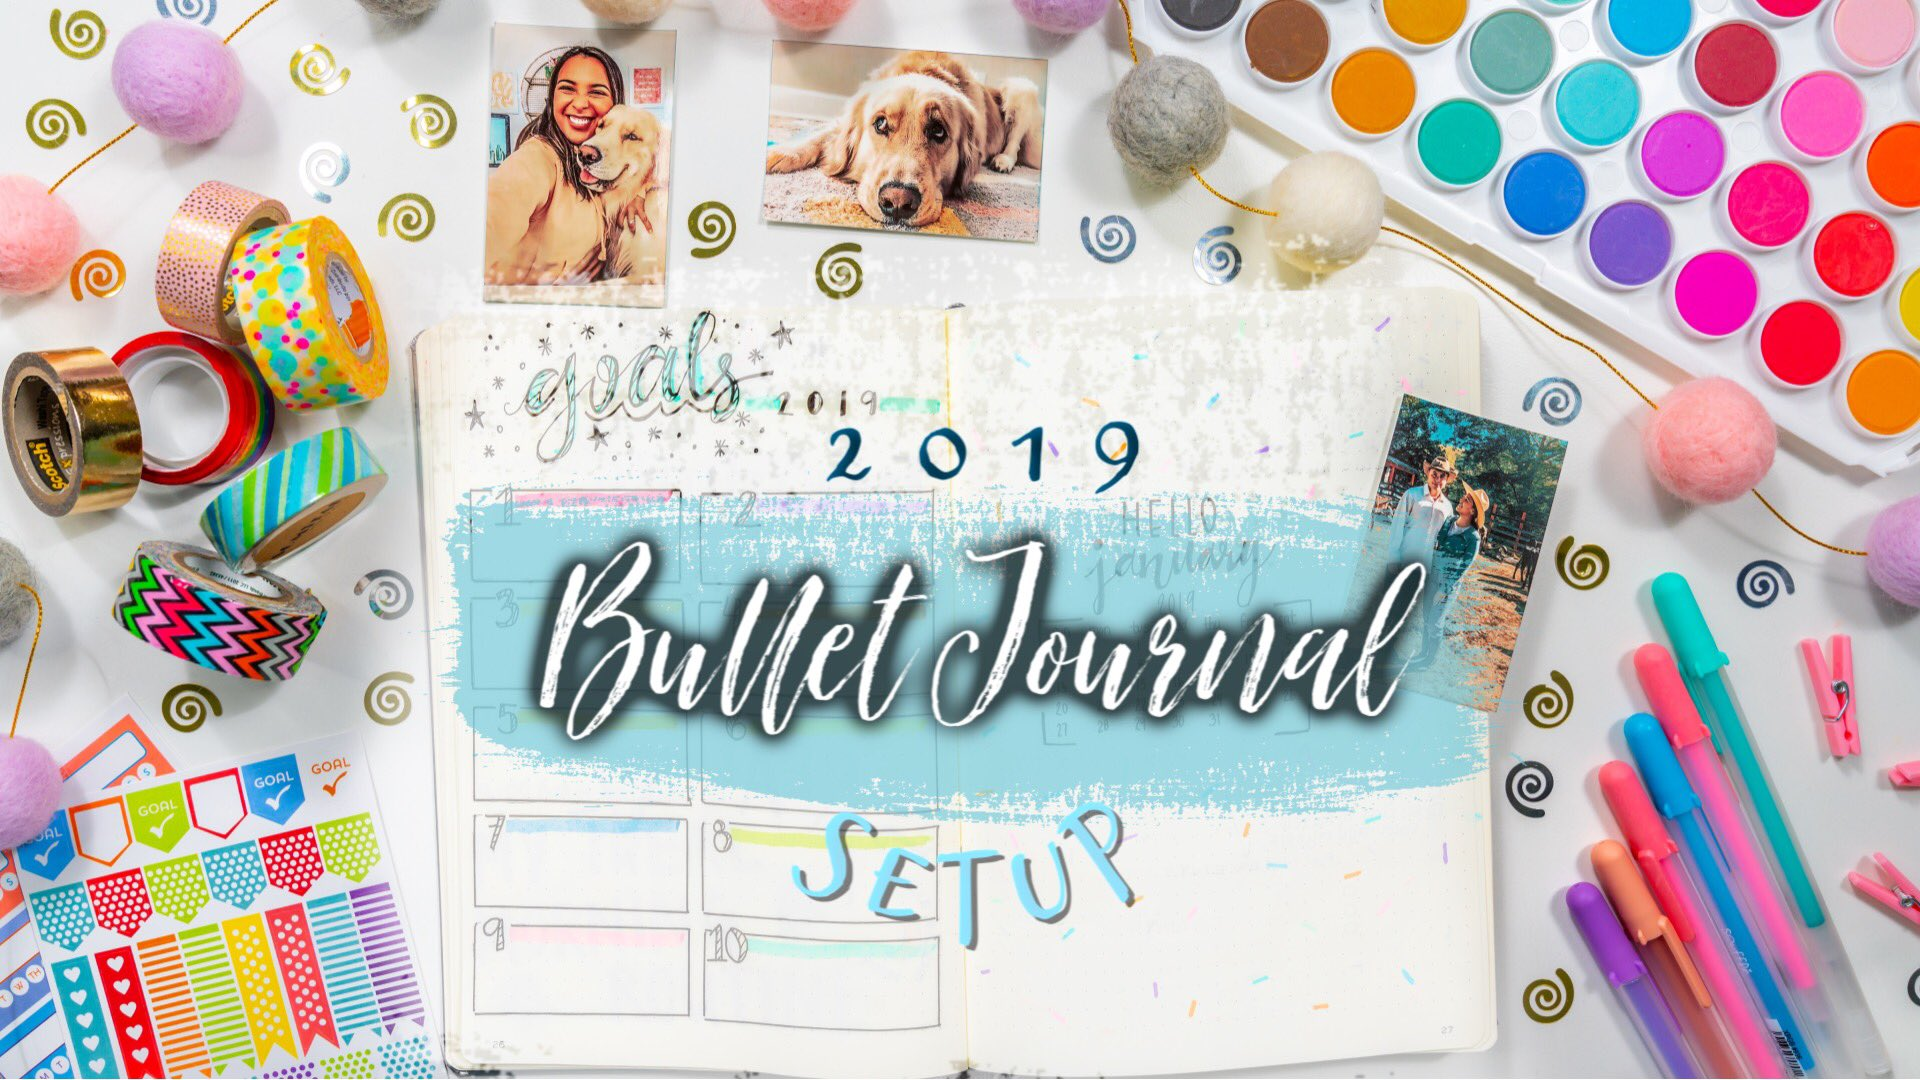 Natalies Outlet On Twitter How To Bullet Journal For Beginners 2019 Setup Diy Easy Ideas For Maximum Productivity Https T Co Ordjqyjfnq Rt For The Best Luck This Year Https T Co Xoufsbfyls